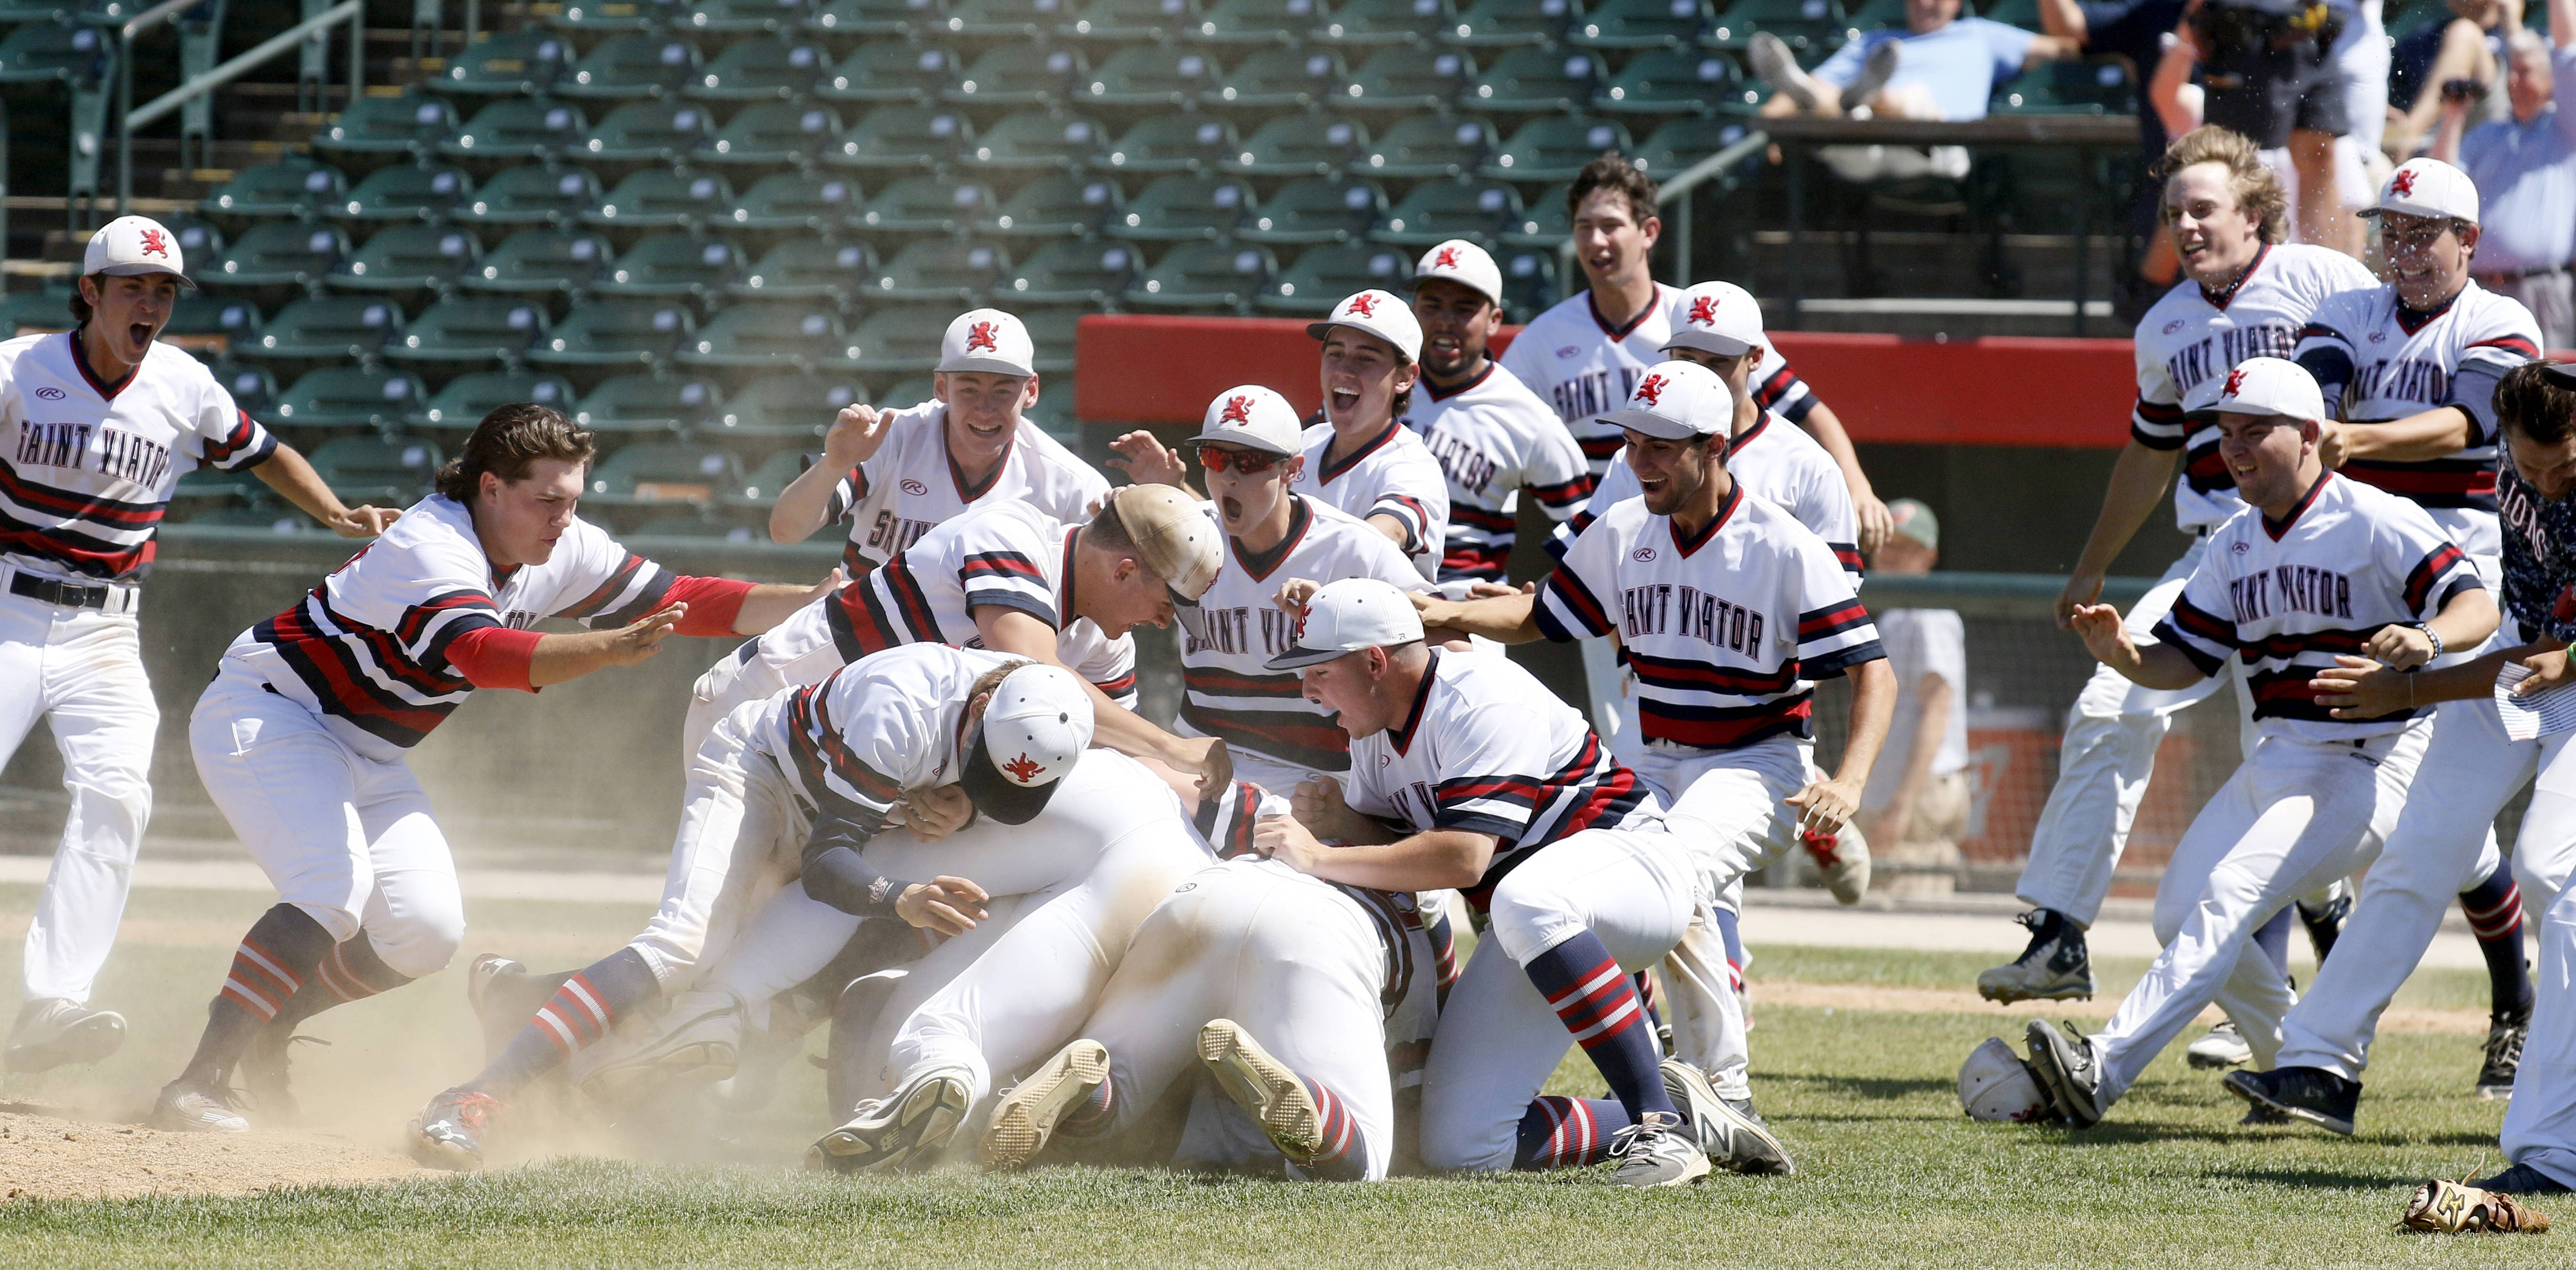 St. Viator players celebrate their Class 3A state championship after a 10-8 win over Marian Catholic on Saturday in Joliet.